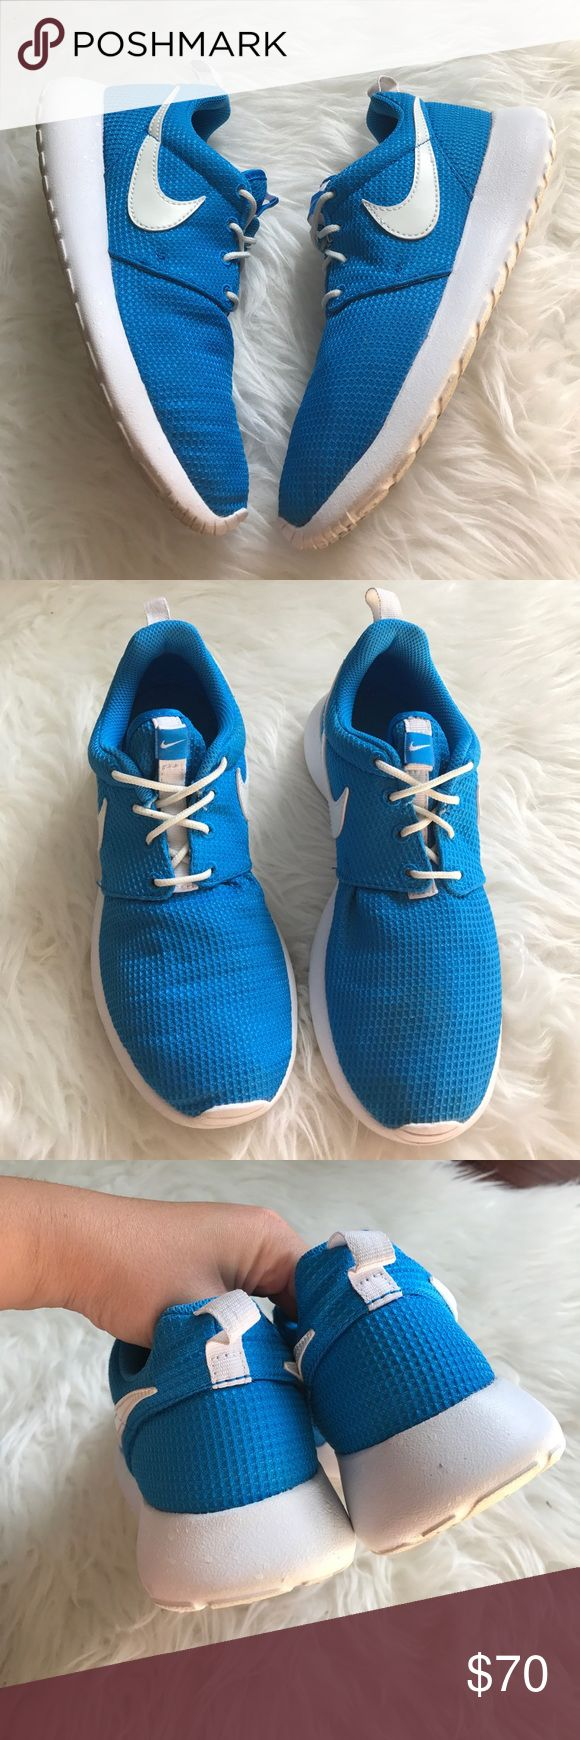 Nike Blue Glow In The Dark Roshe Sneakers Excellent used condition. Only worn a few times. Wear is only on the soles. Labeled size 4Y which is equivalent to a women's size 5.5. Last picture shows what they look like in the dark. Nike Shoes Sneakers